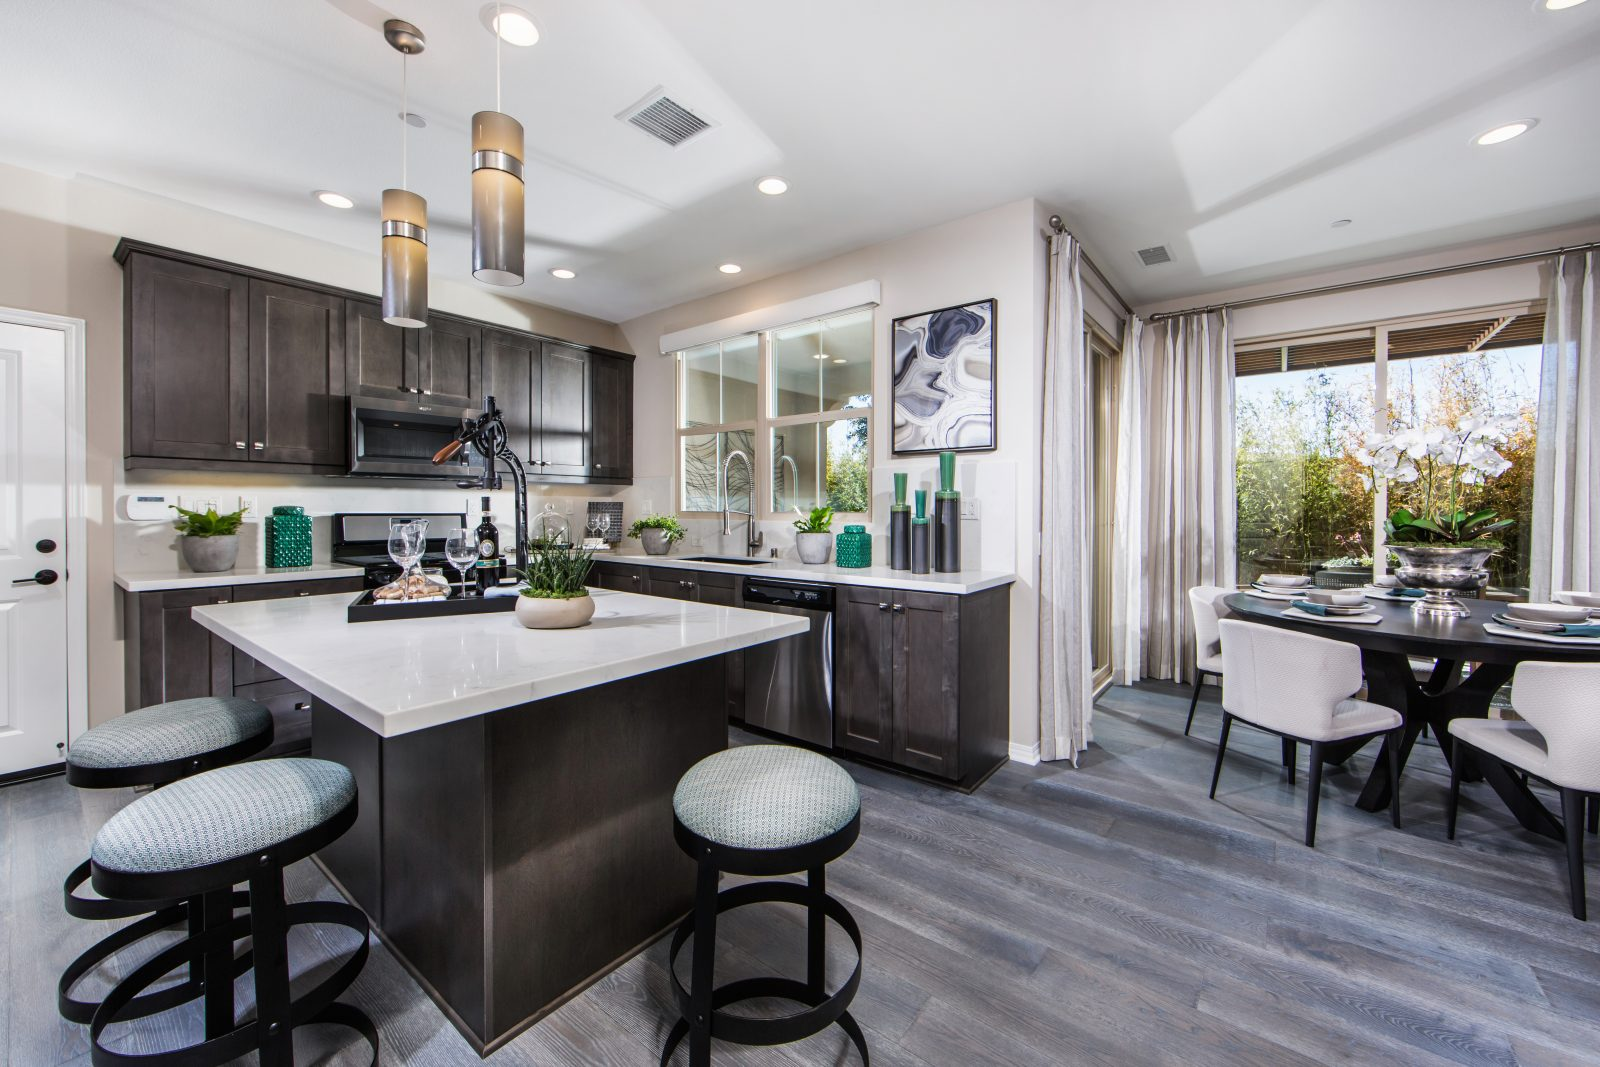 New townhomes for sale in Irvine Kitchen